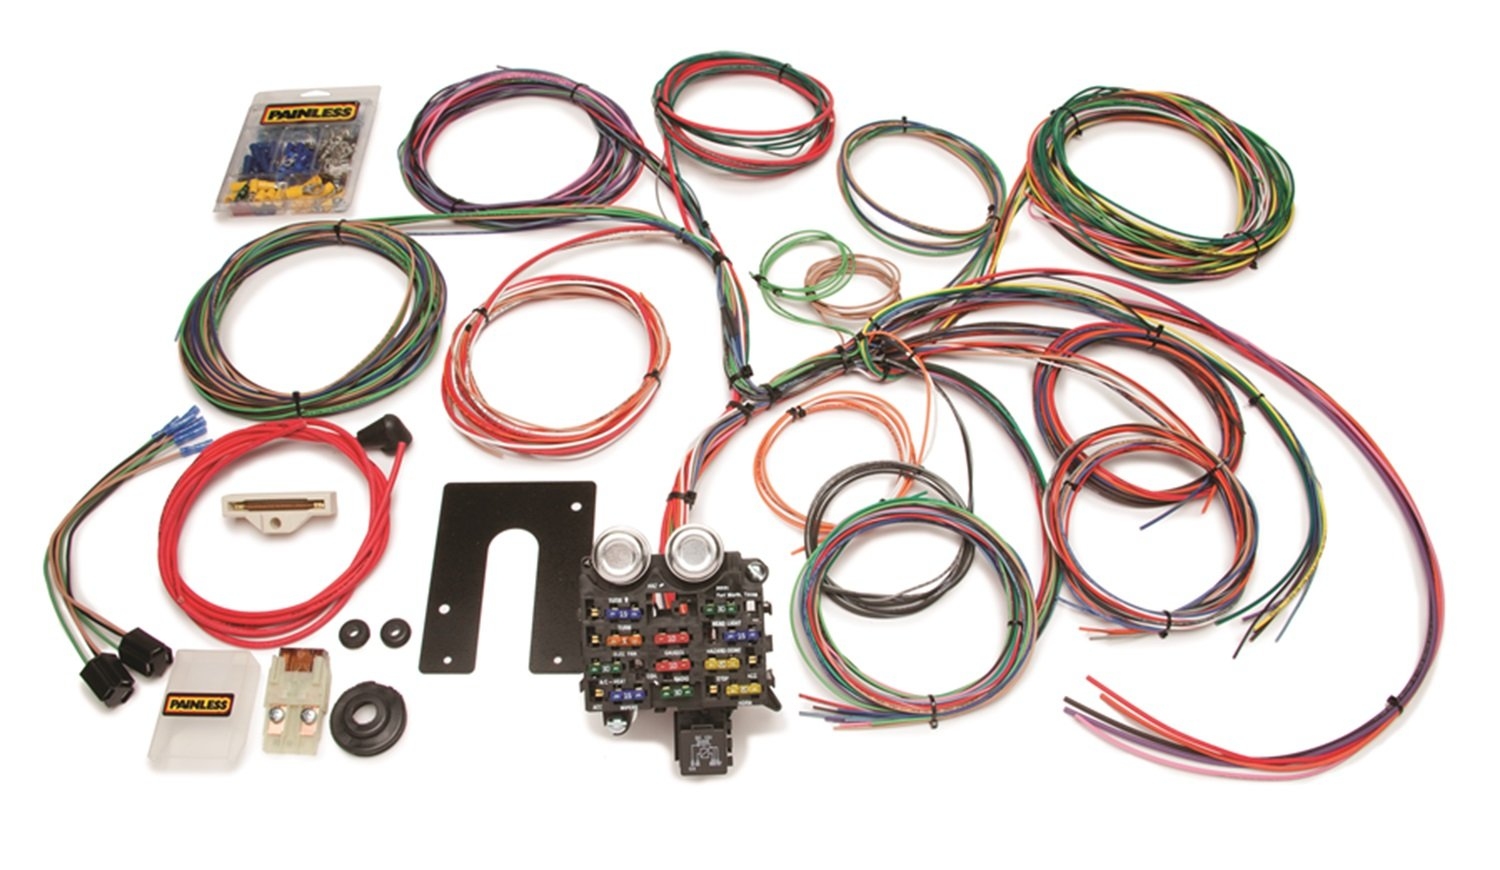 painless 10105 classic customizable jeep cj harness (1975 and earlier 22 circuits) 10150 Painless Wiring Harness